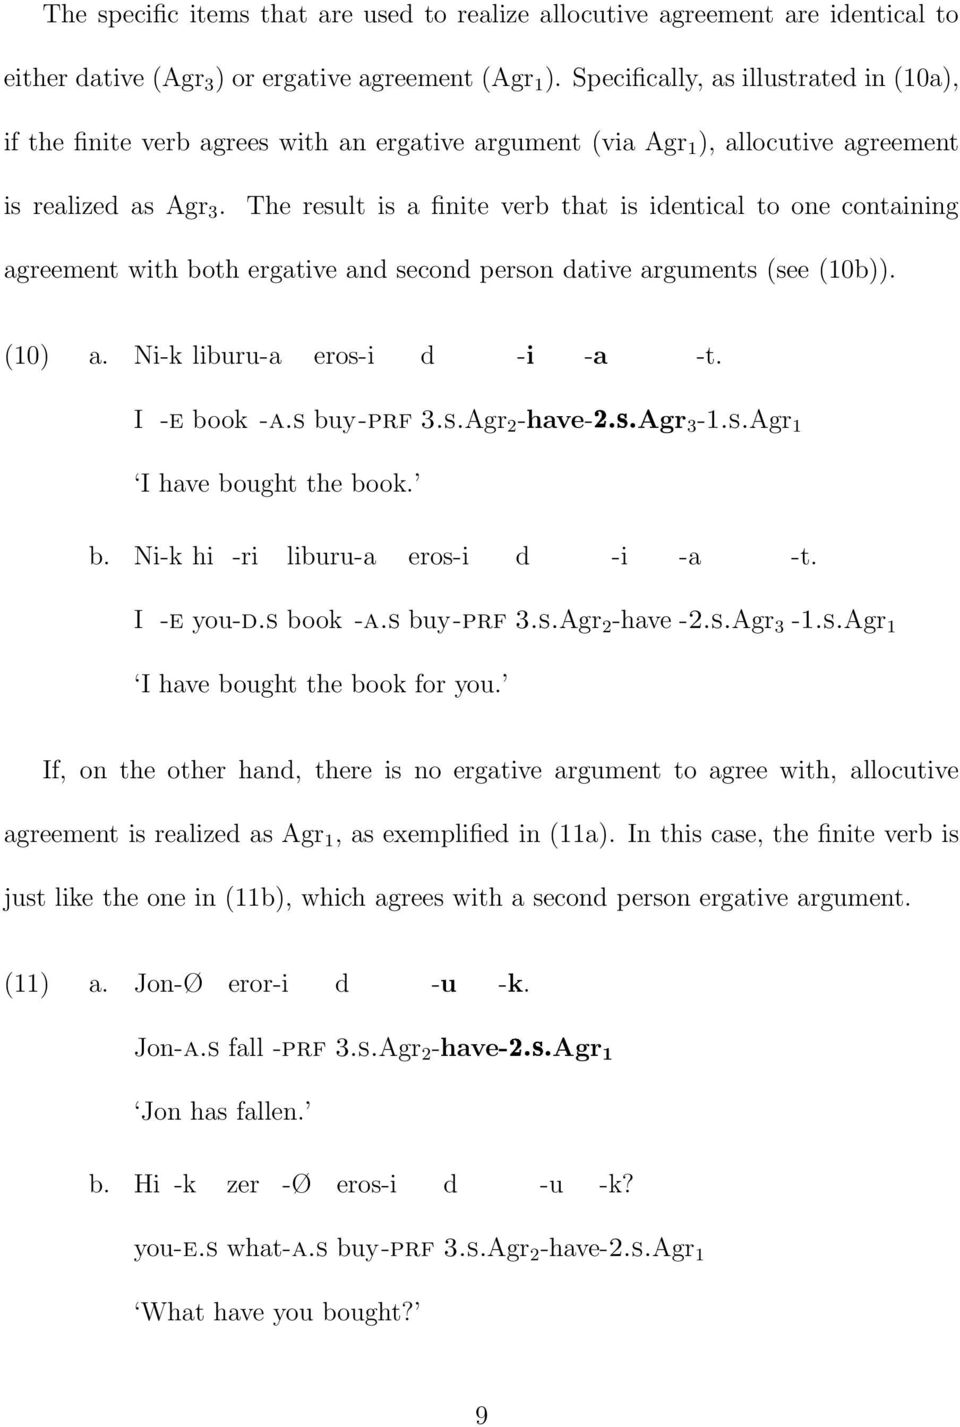 The result is a finite verb that is identical to one containing agreement with both ergative and second person dative arguments (see (10b)). (10) a. Ni-k liburu-a eros-i d -i -a -t. I -e book -a.